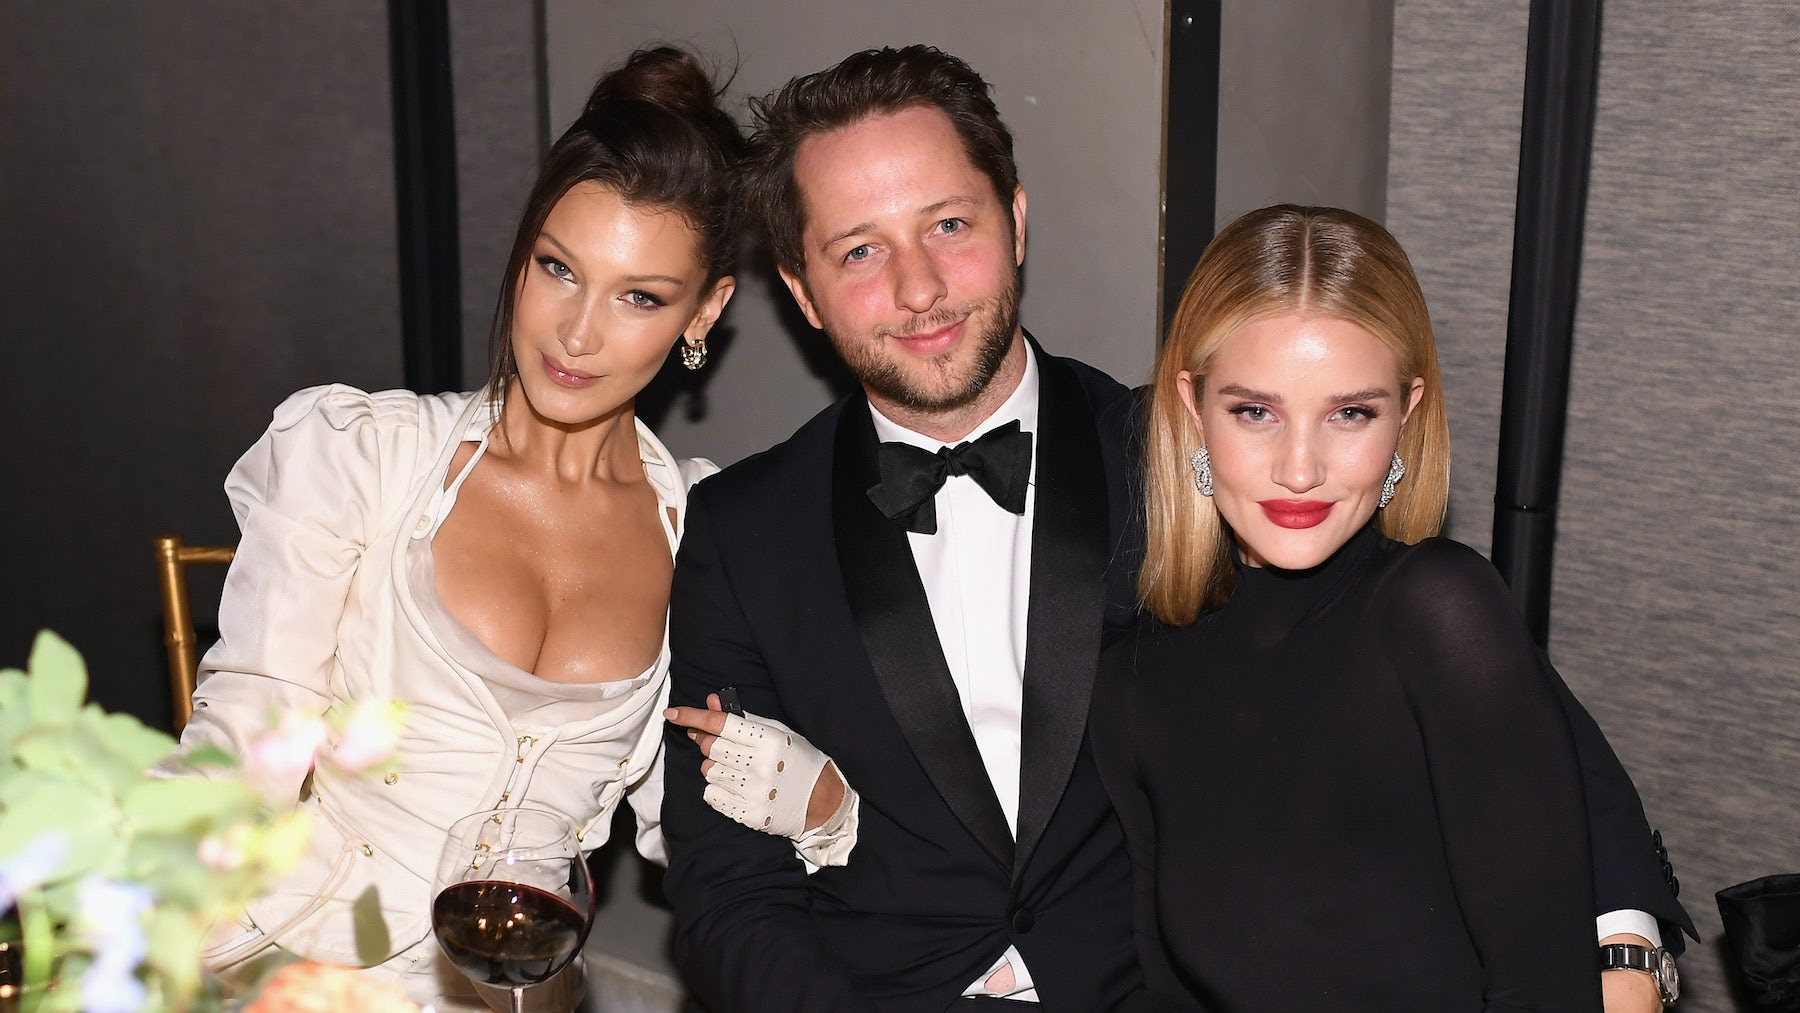 Bella Hadid, Derek Blasberg and Rosie Huntington-Whiteley at the #BoF500 gala dinner during NYFW Spring/Summer 2019 by Dimitrios Kambouris | Source: Getty